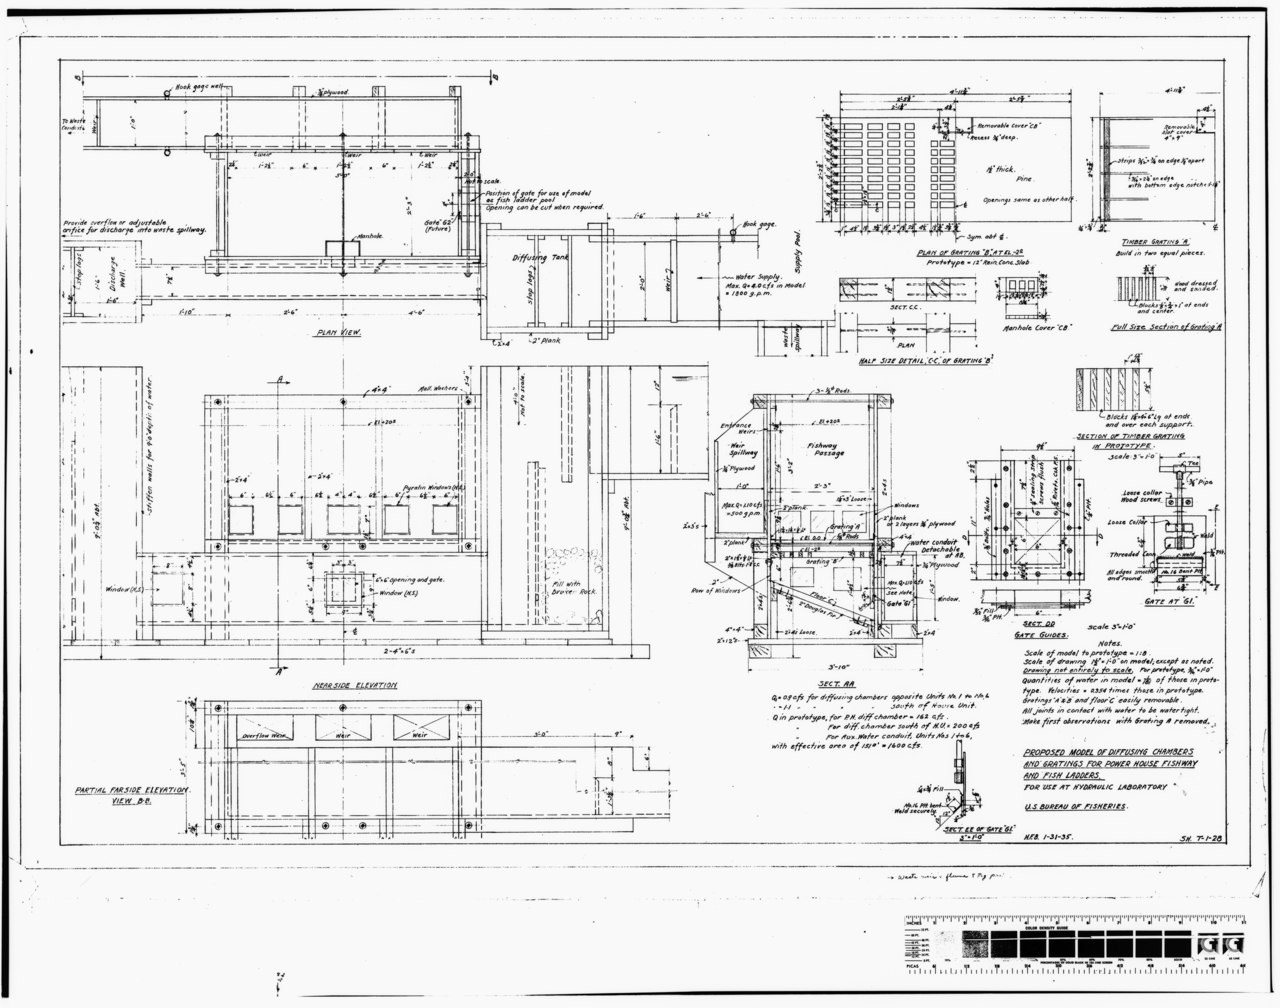 File Photocopy Of Original Construction Drawing Dated 31